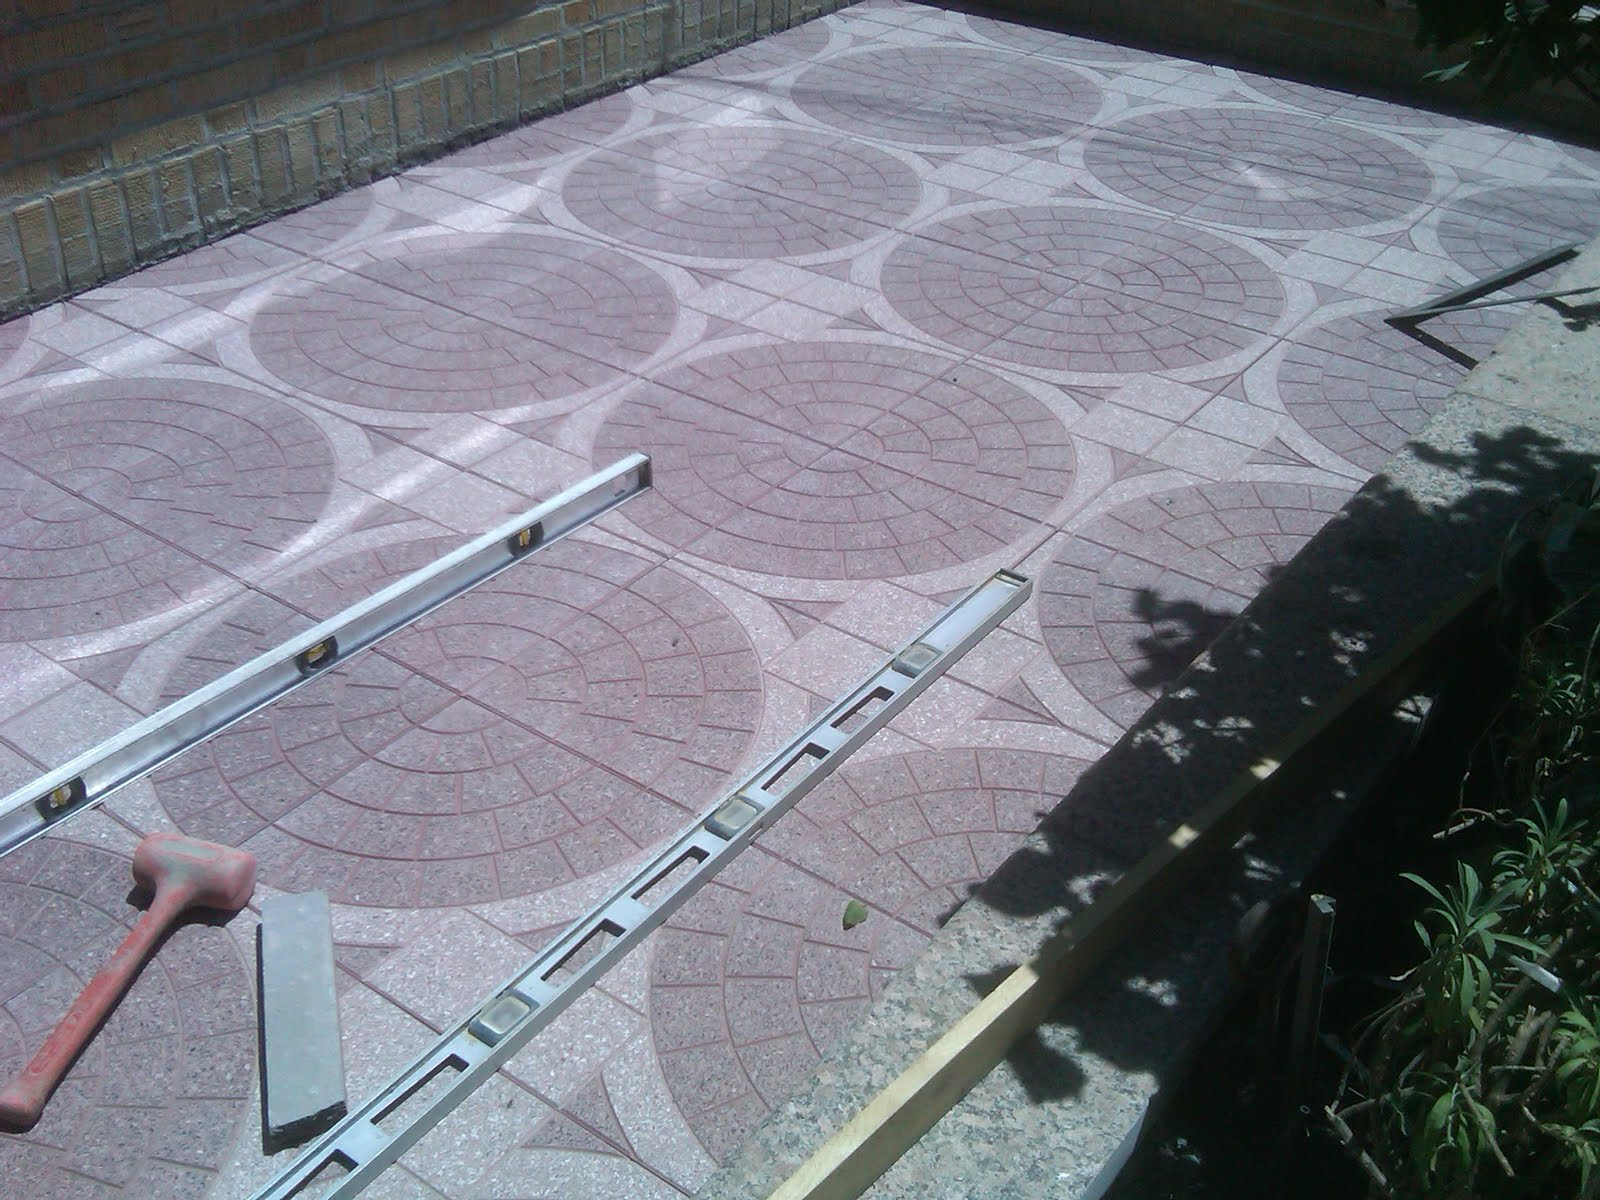 JCK Contracting Corp: Patio Blocks Project